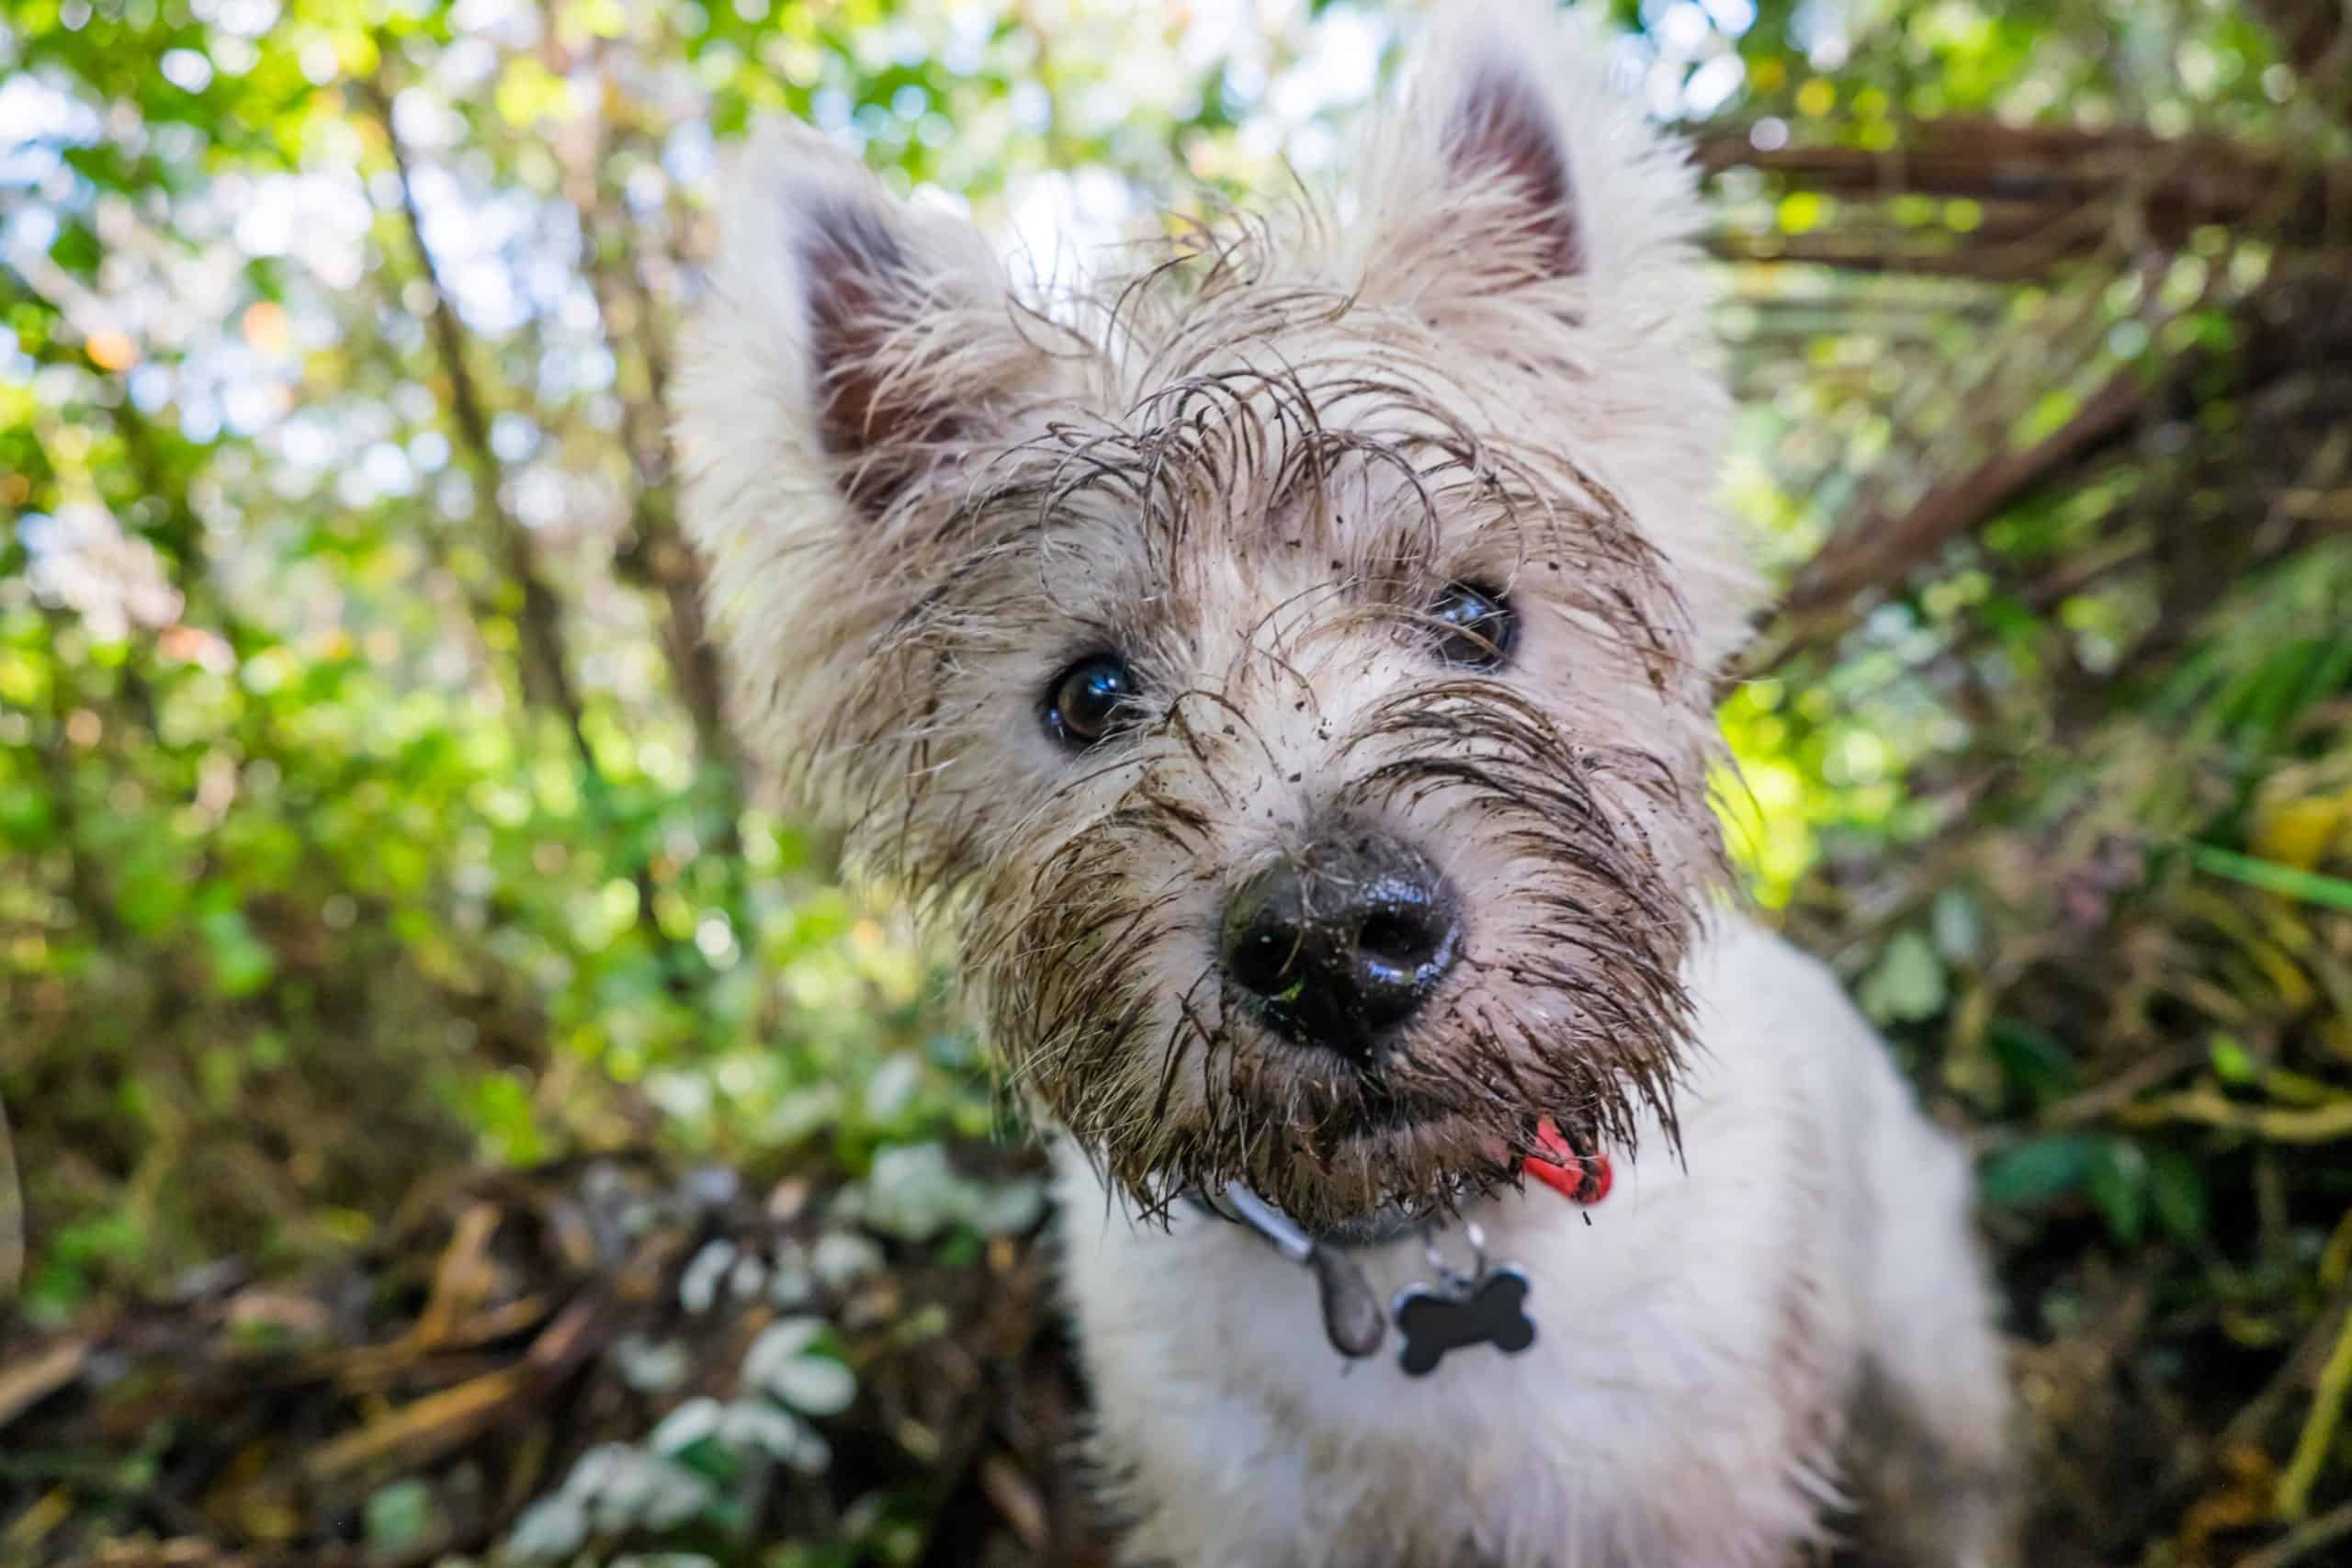 Terrier dog with a muddy face. Stop dogs digging by modifying your dog's behavior. Most dogs dig because they are bored.